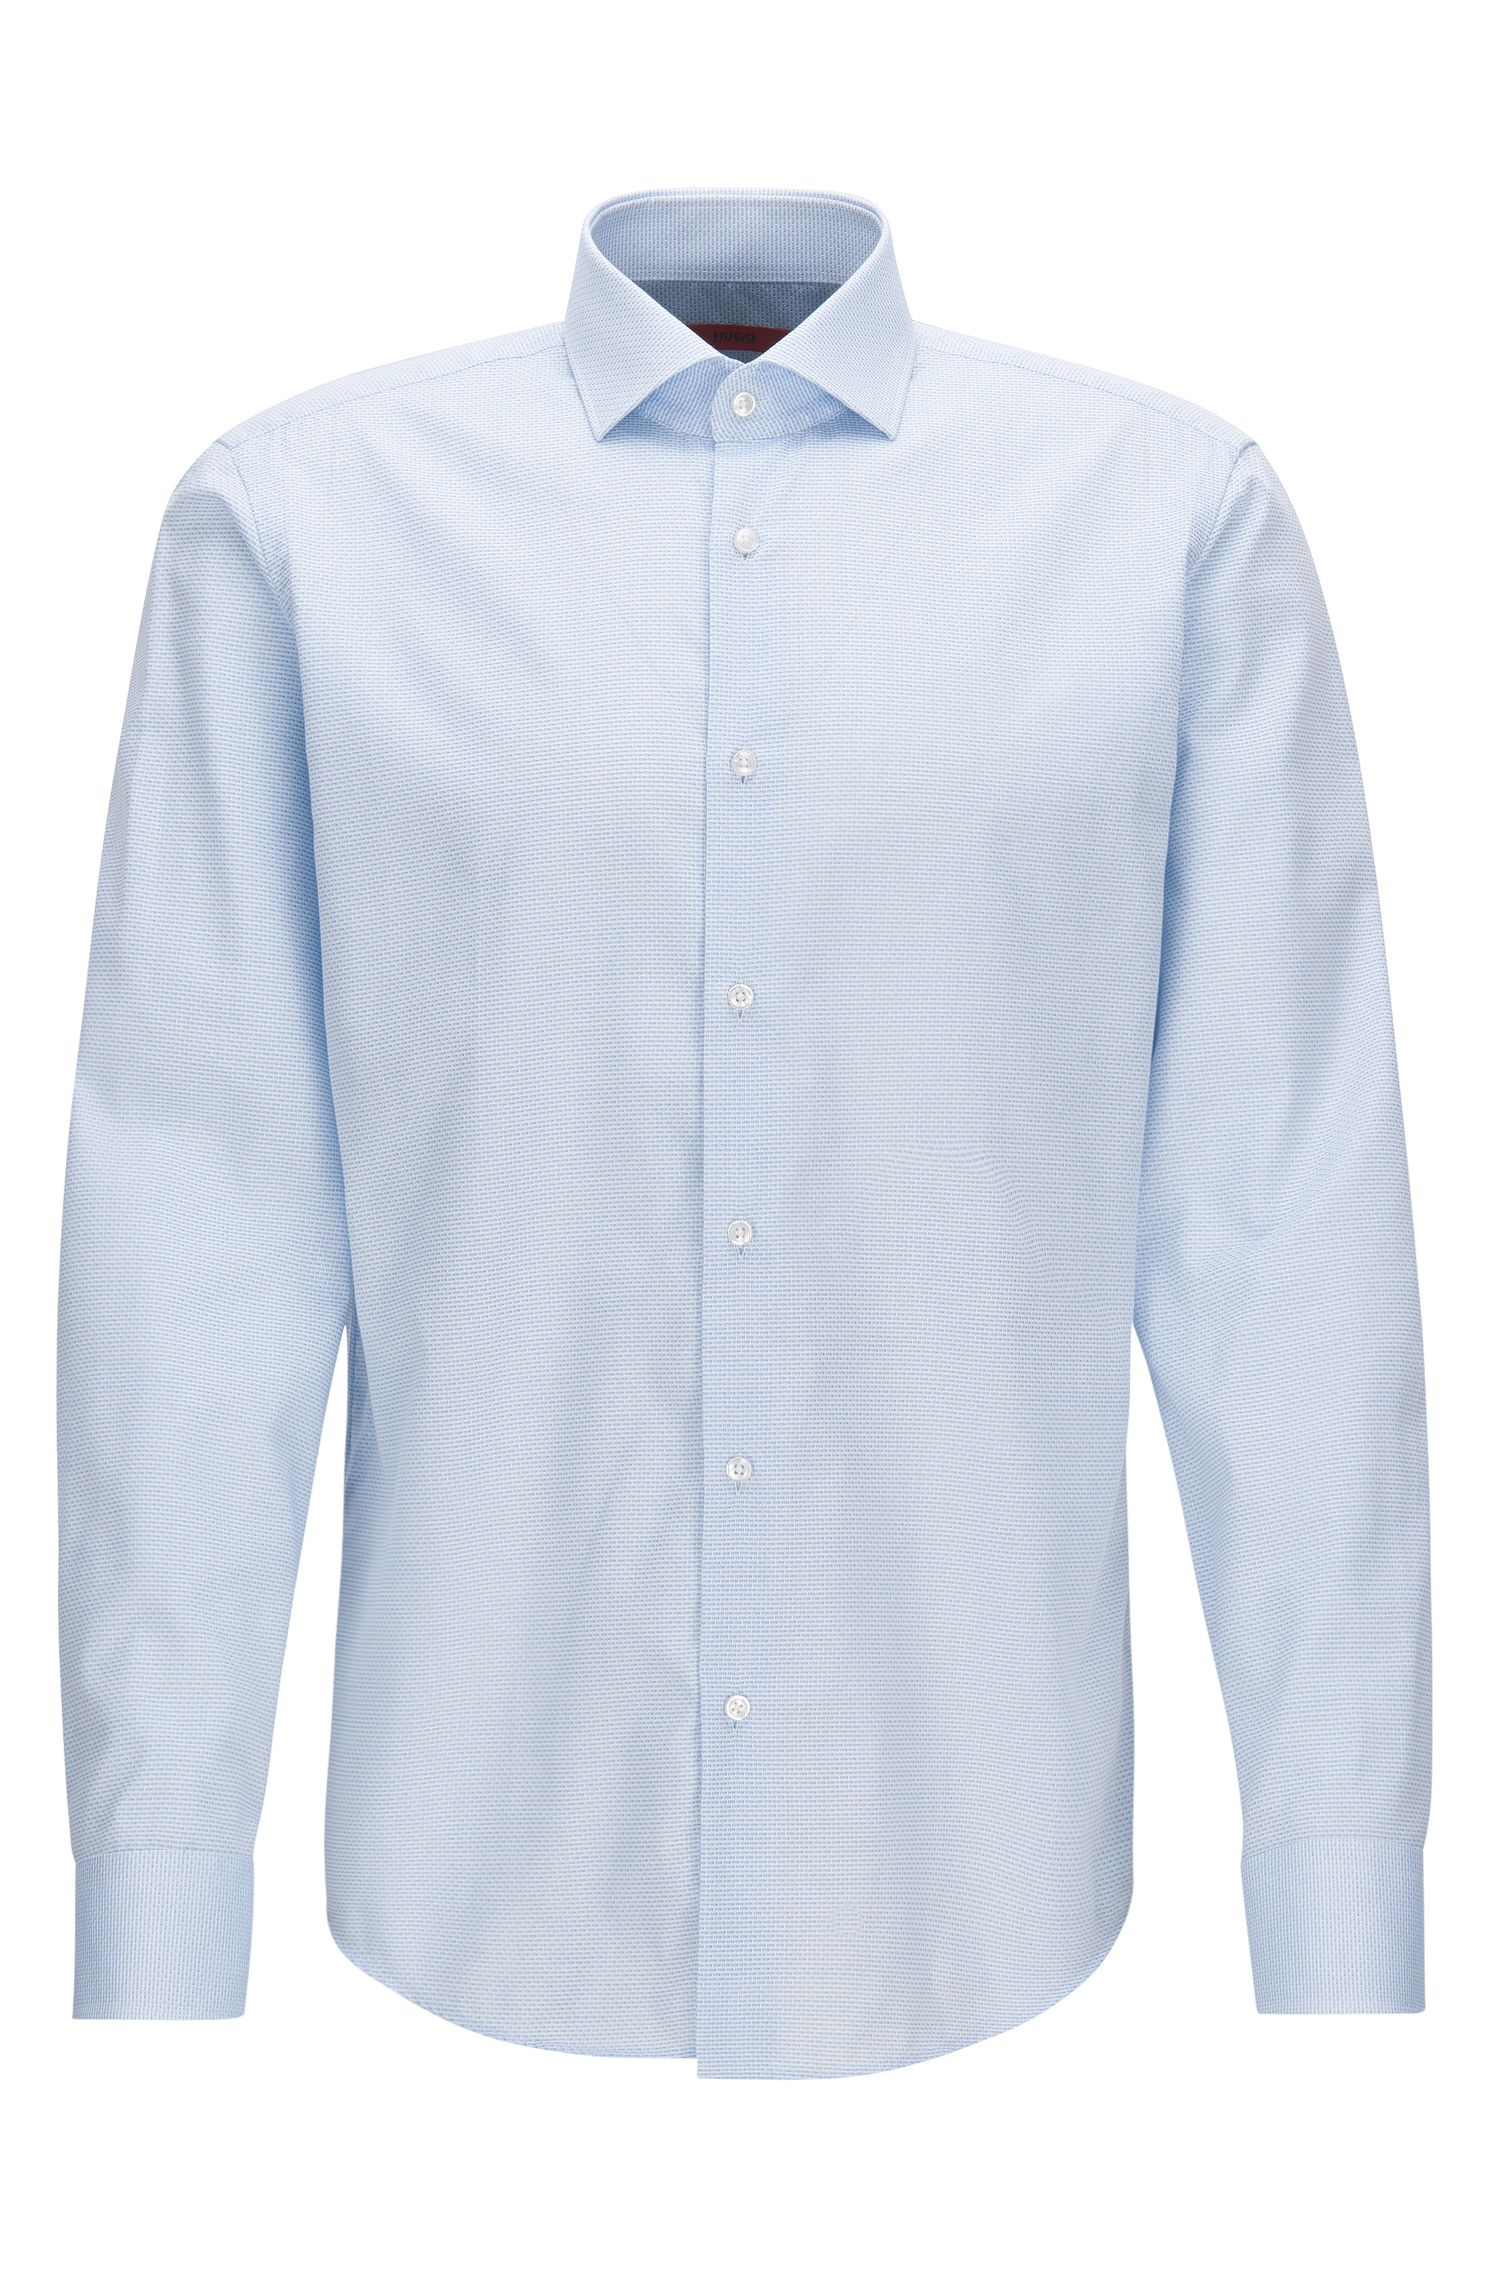 Regular-fit shirt in patterned cotton poplin